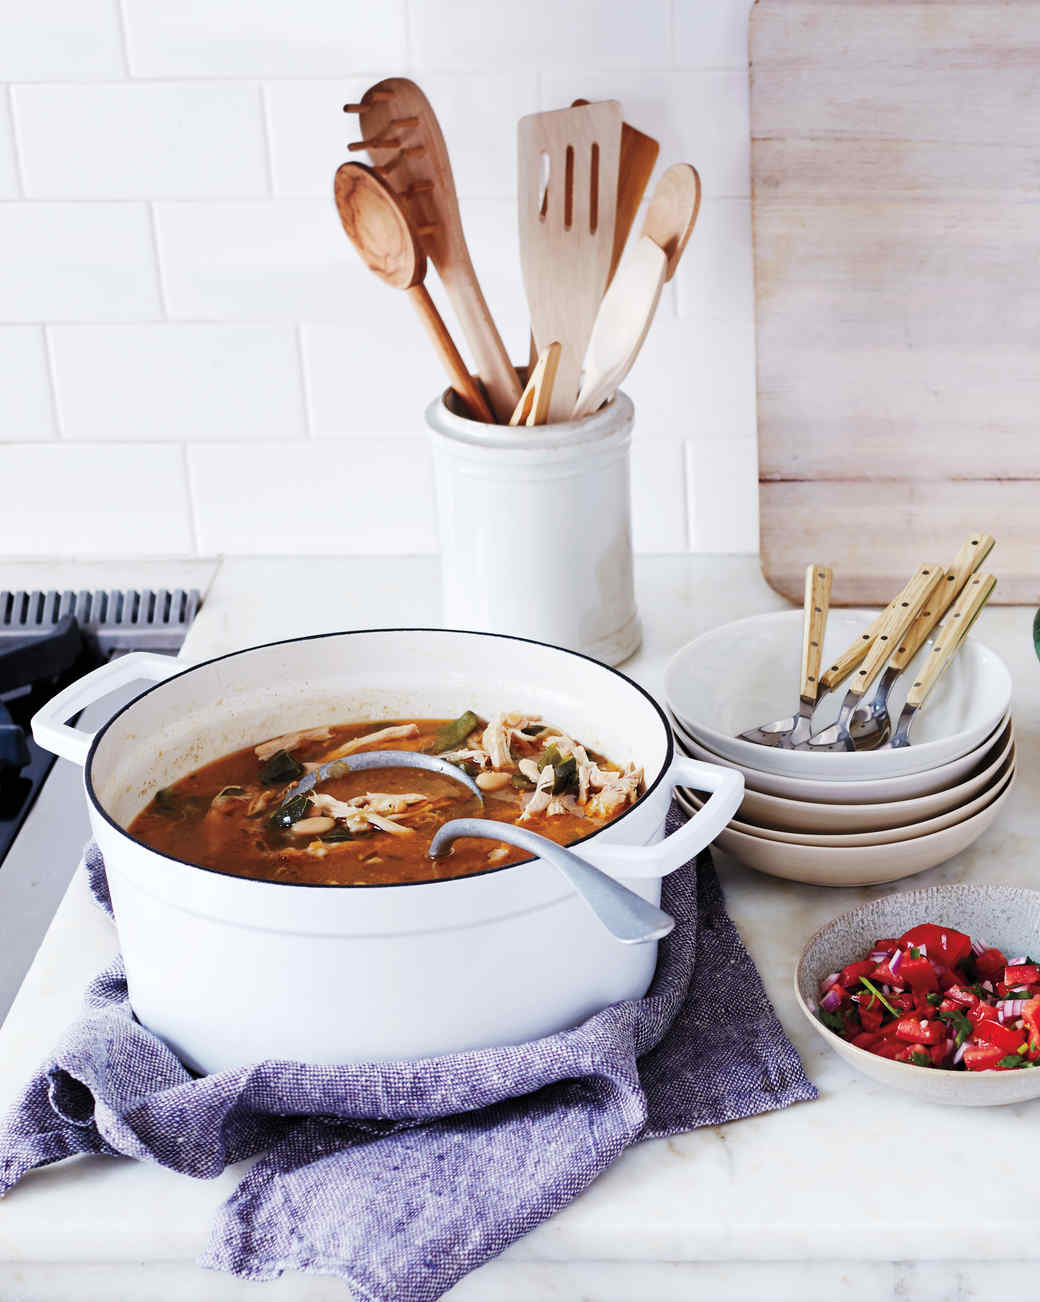 chicken-chili-stew-with-salad-and-pico-278-exp-2-d111325.jpg